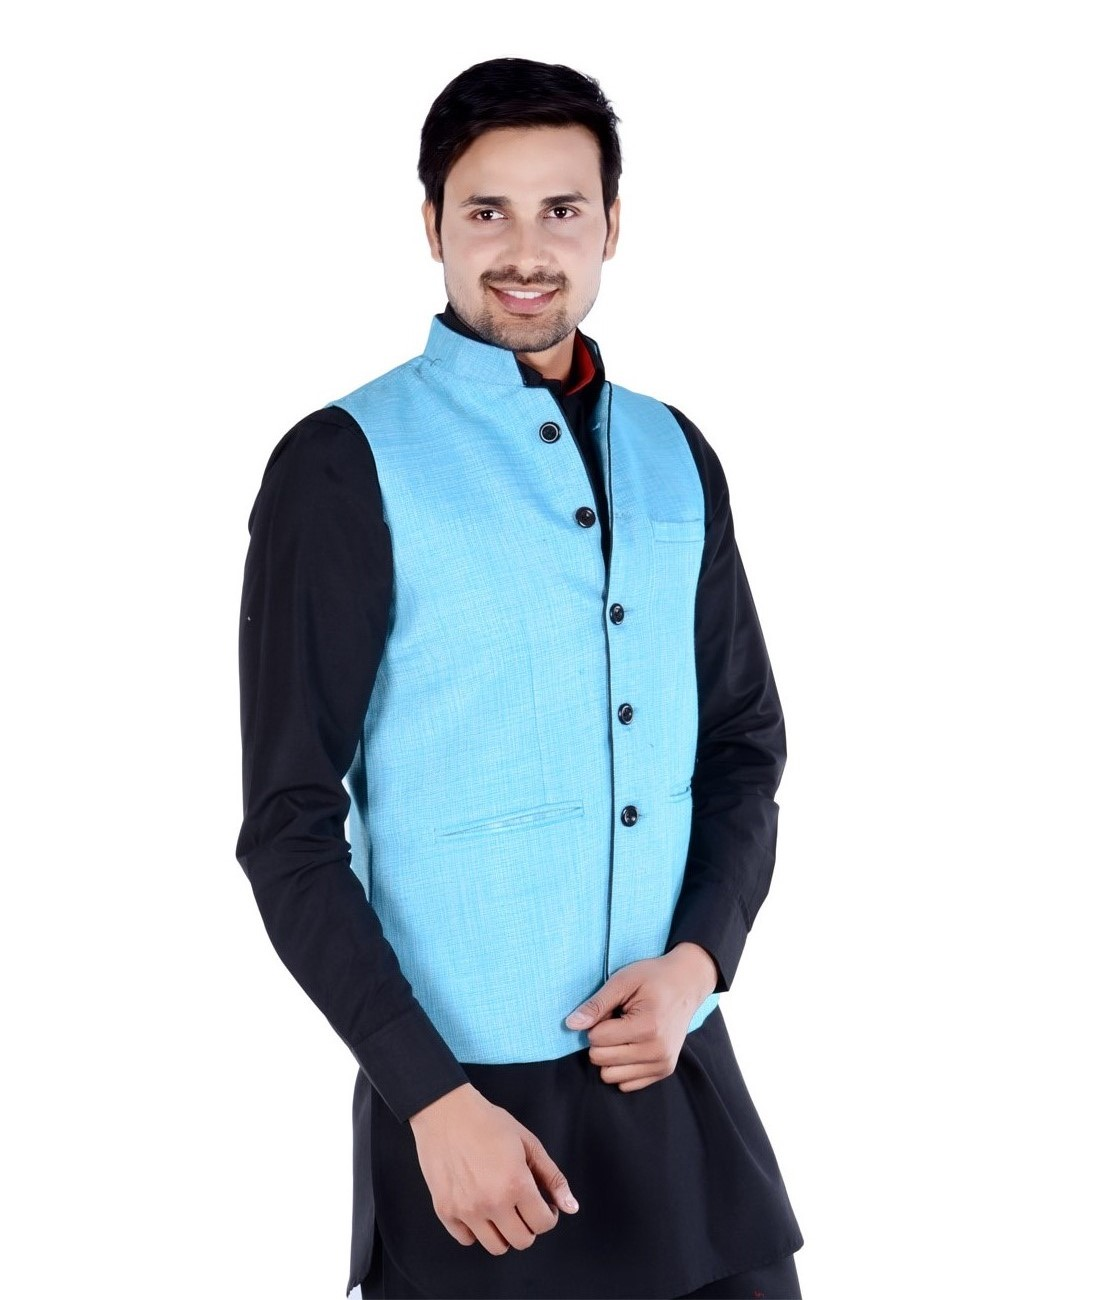 Self Textured waist coat from Forge